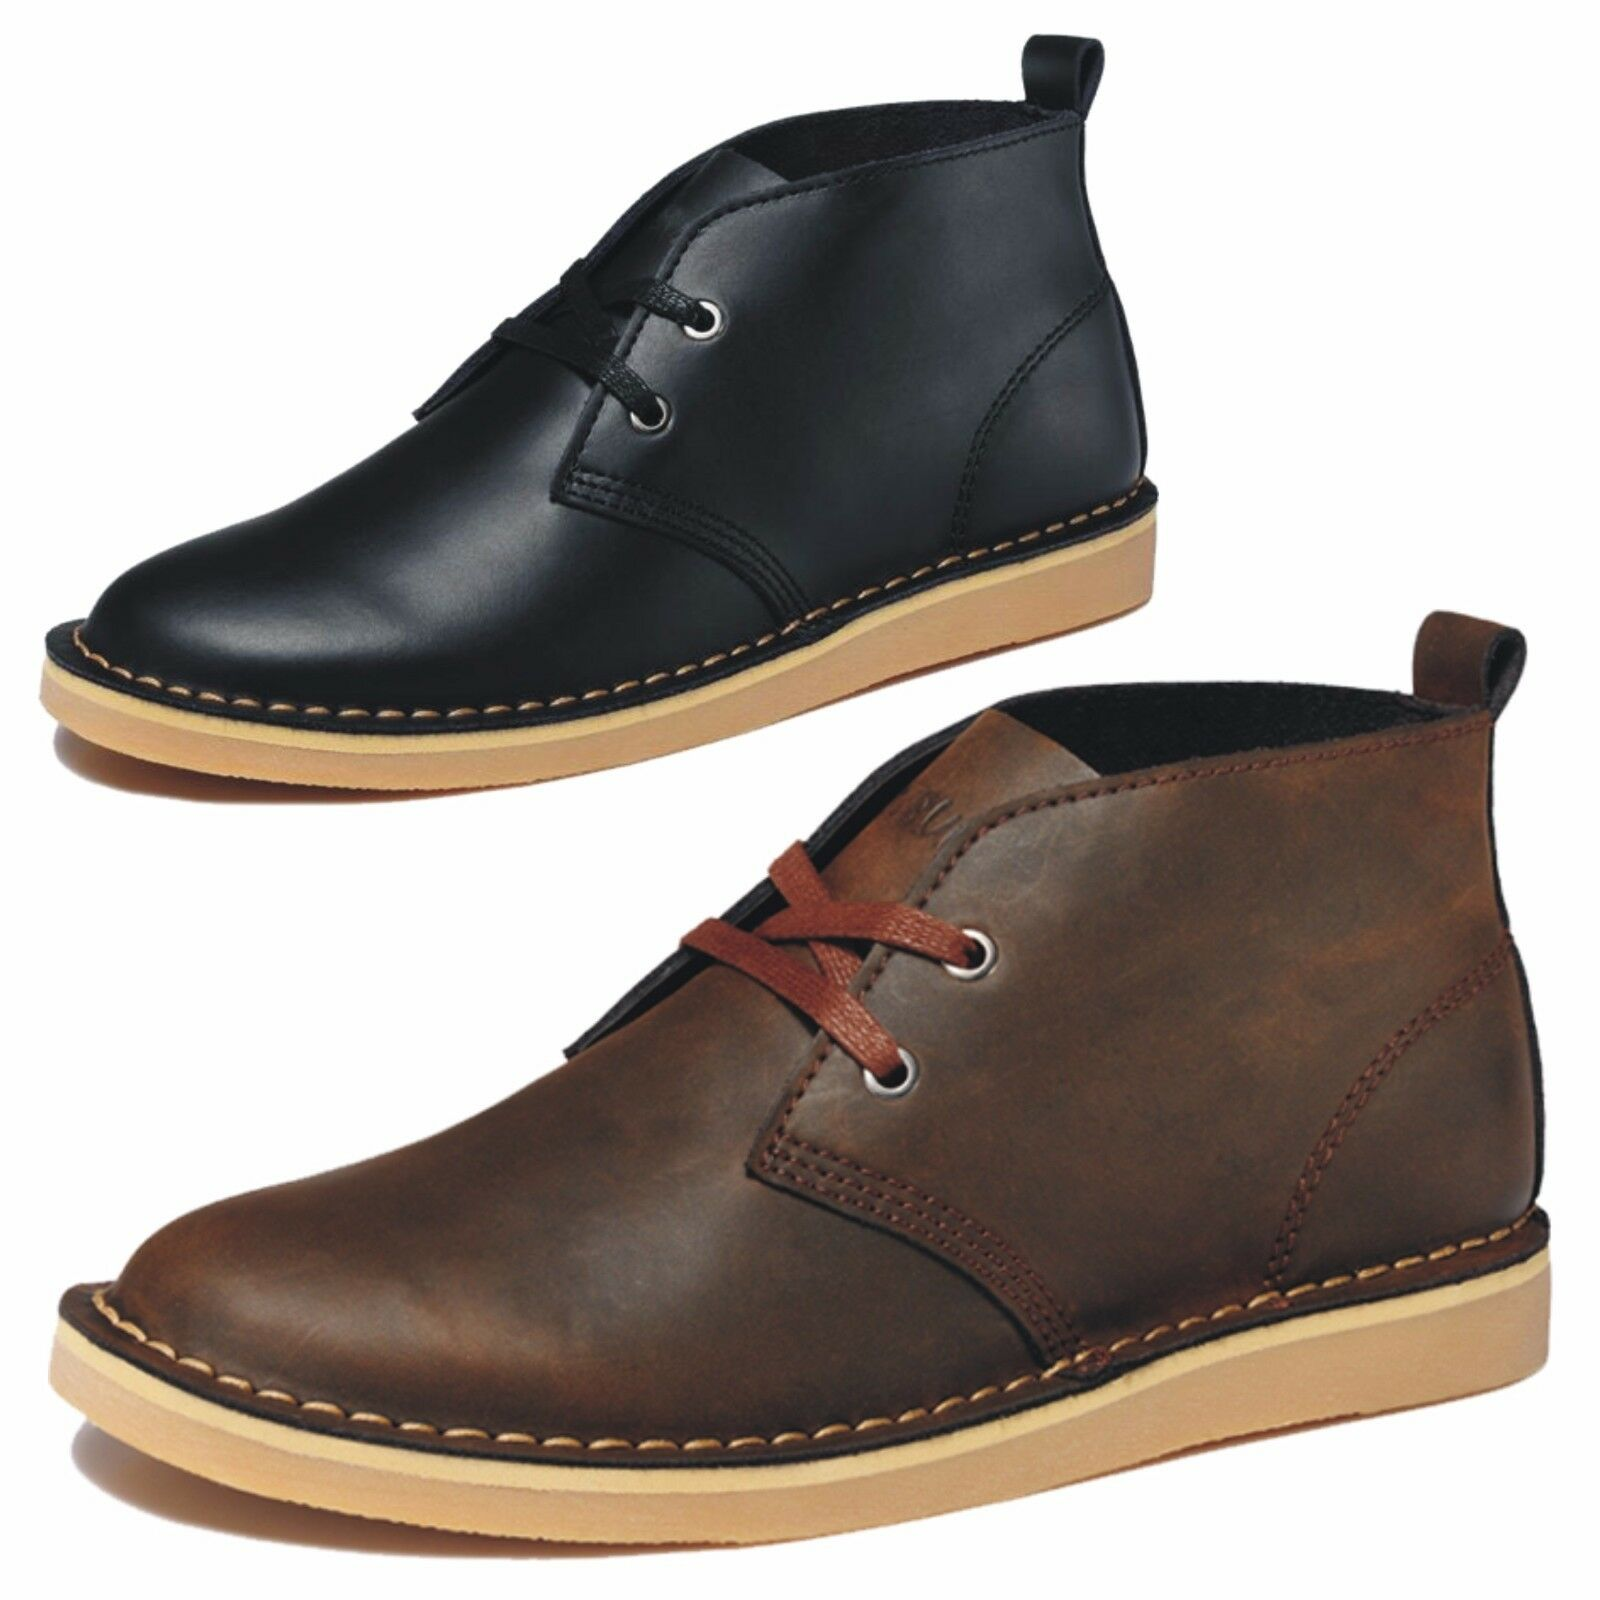 Fashion Mens Ankle Boots Casual Leather Desert Boots Lace up Outdoor Work shoes